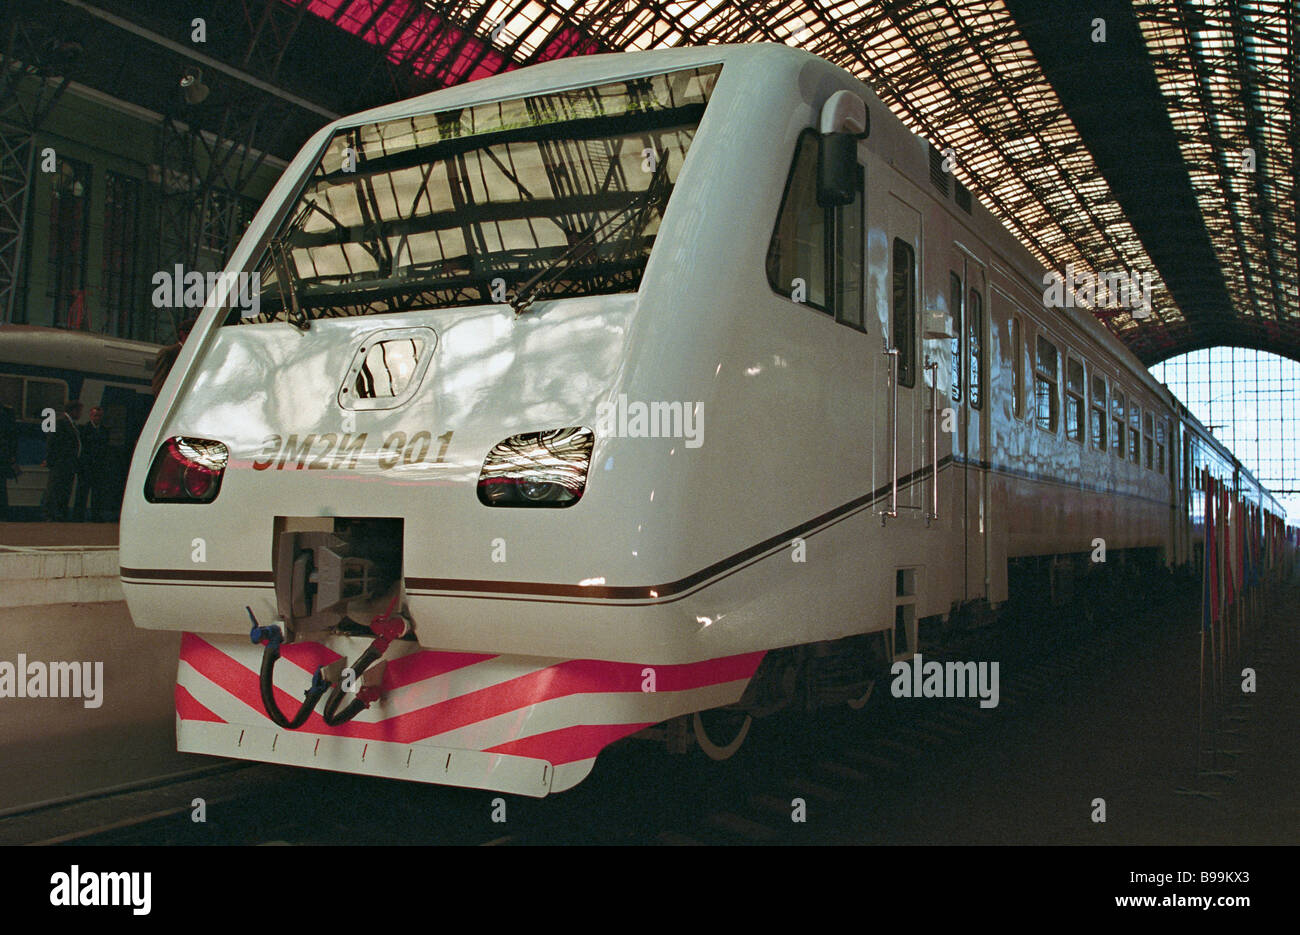 The EM2I 001 commuter electric train Stock Photo